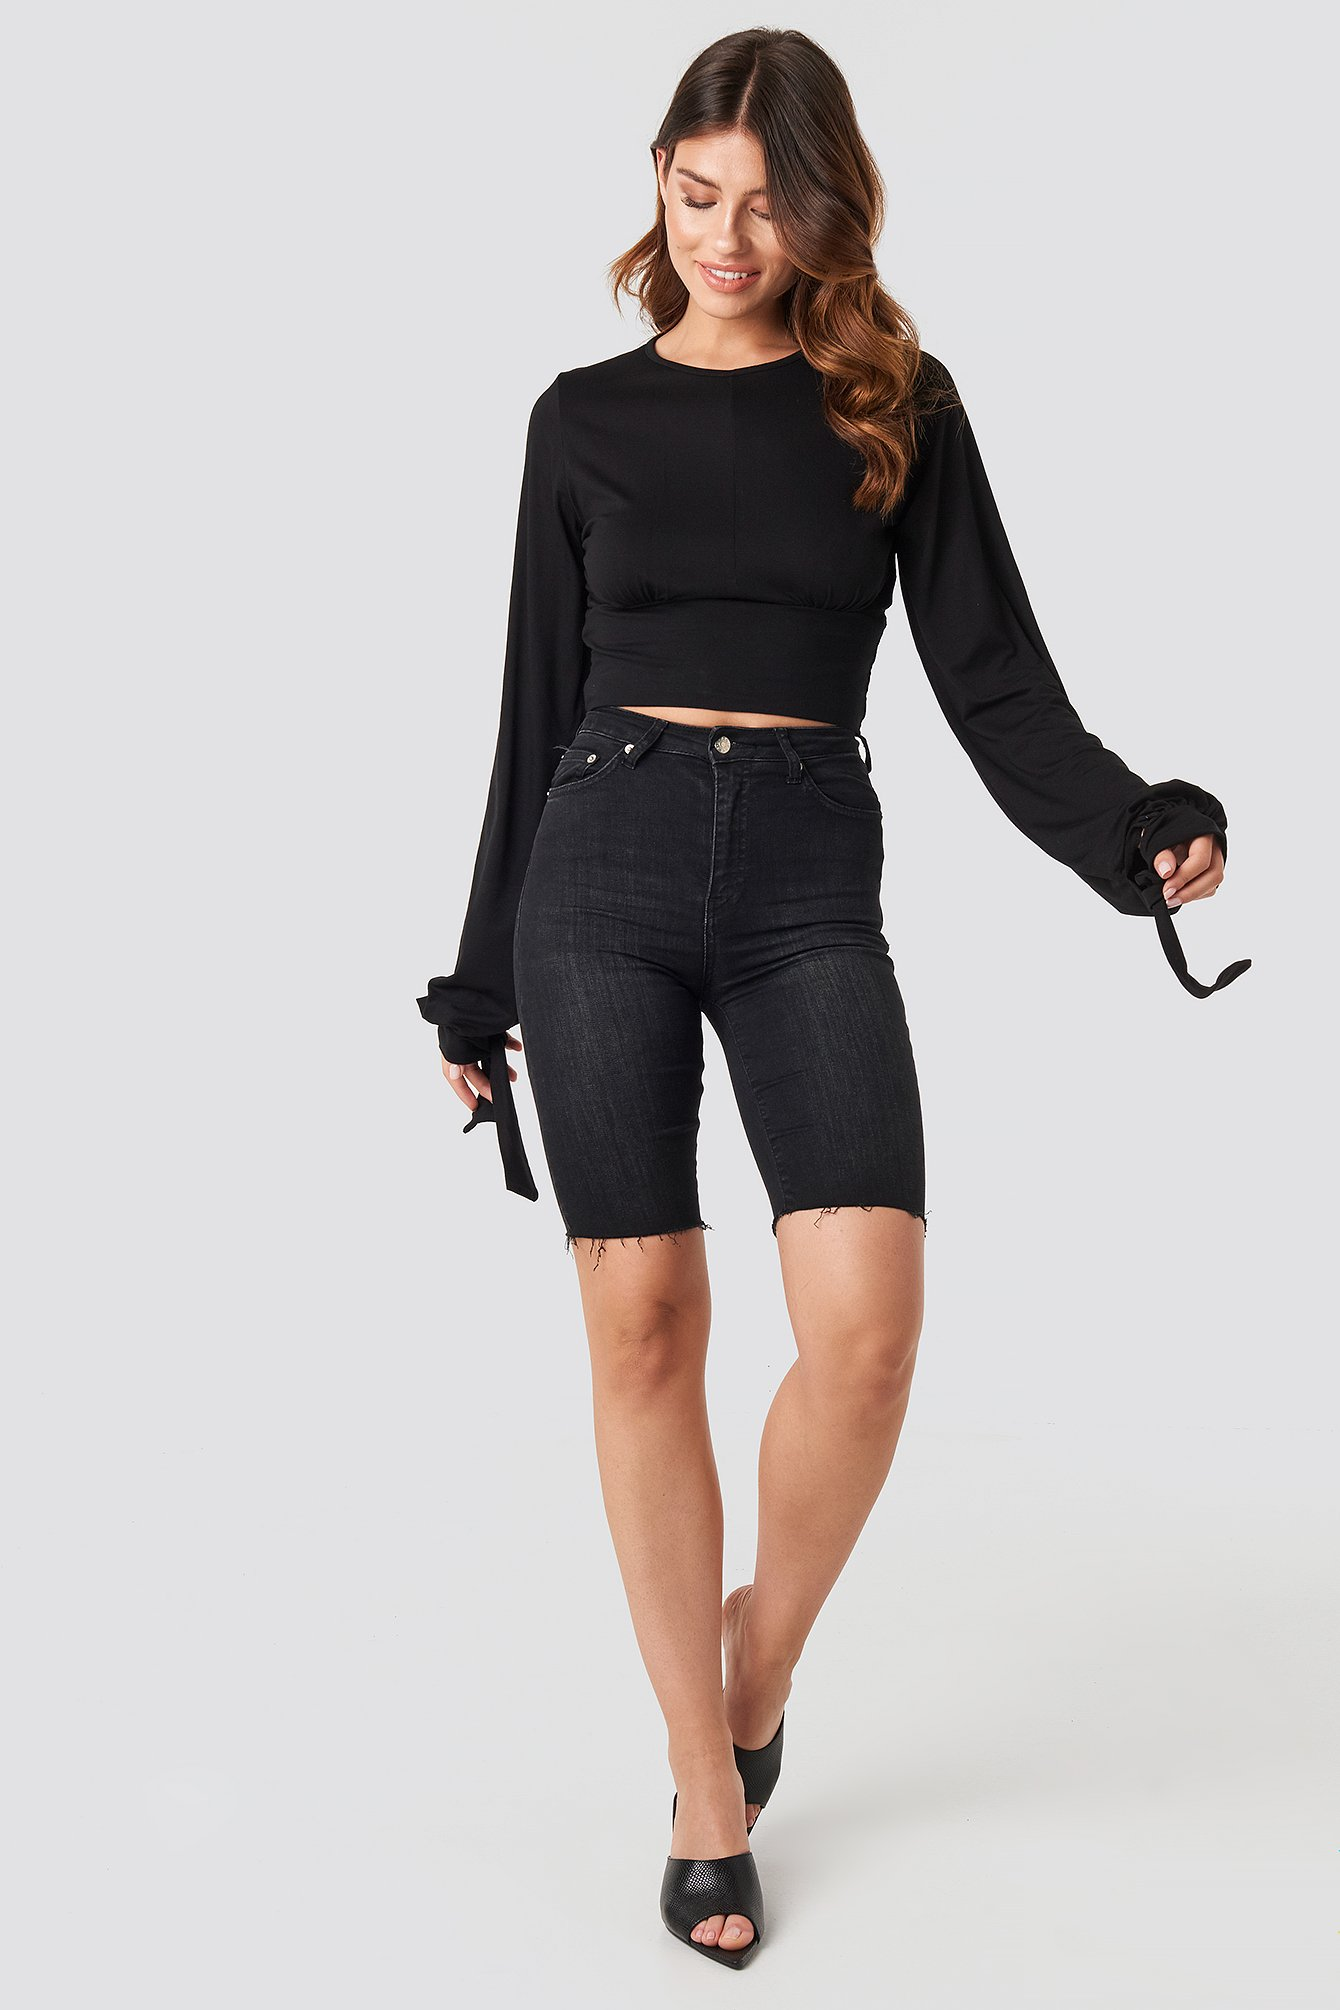 Deep Black Tie Balloon Sleeve Top